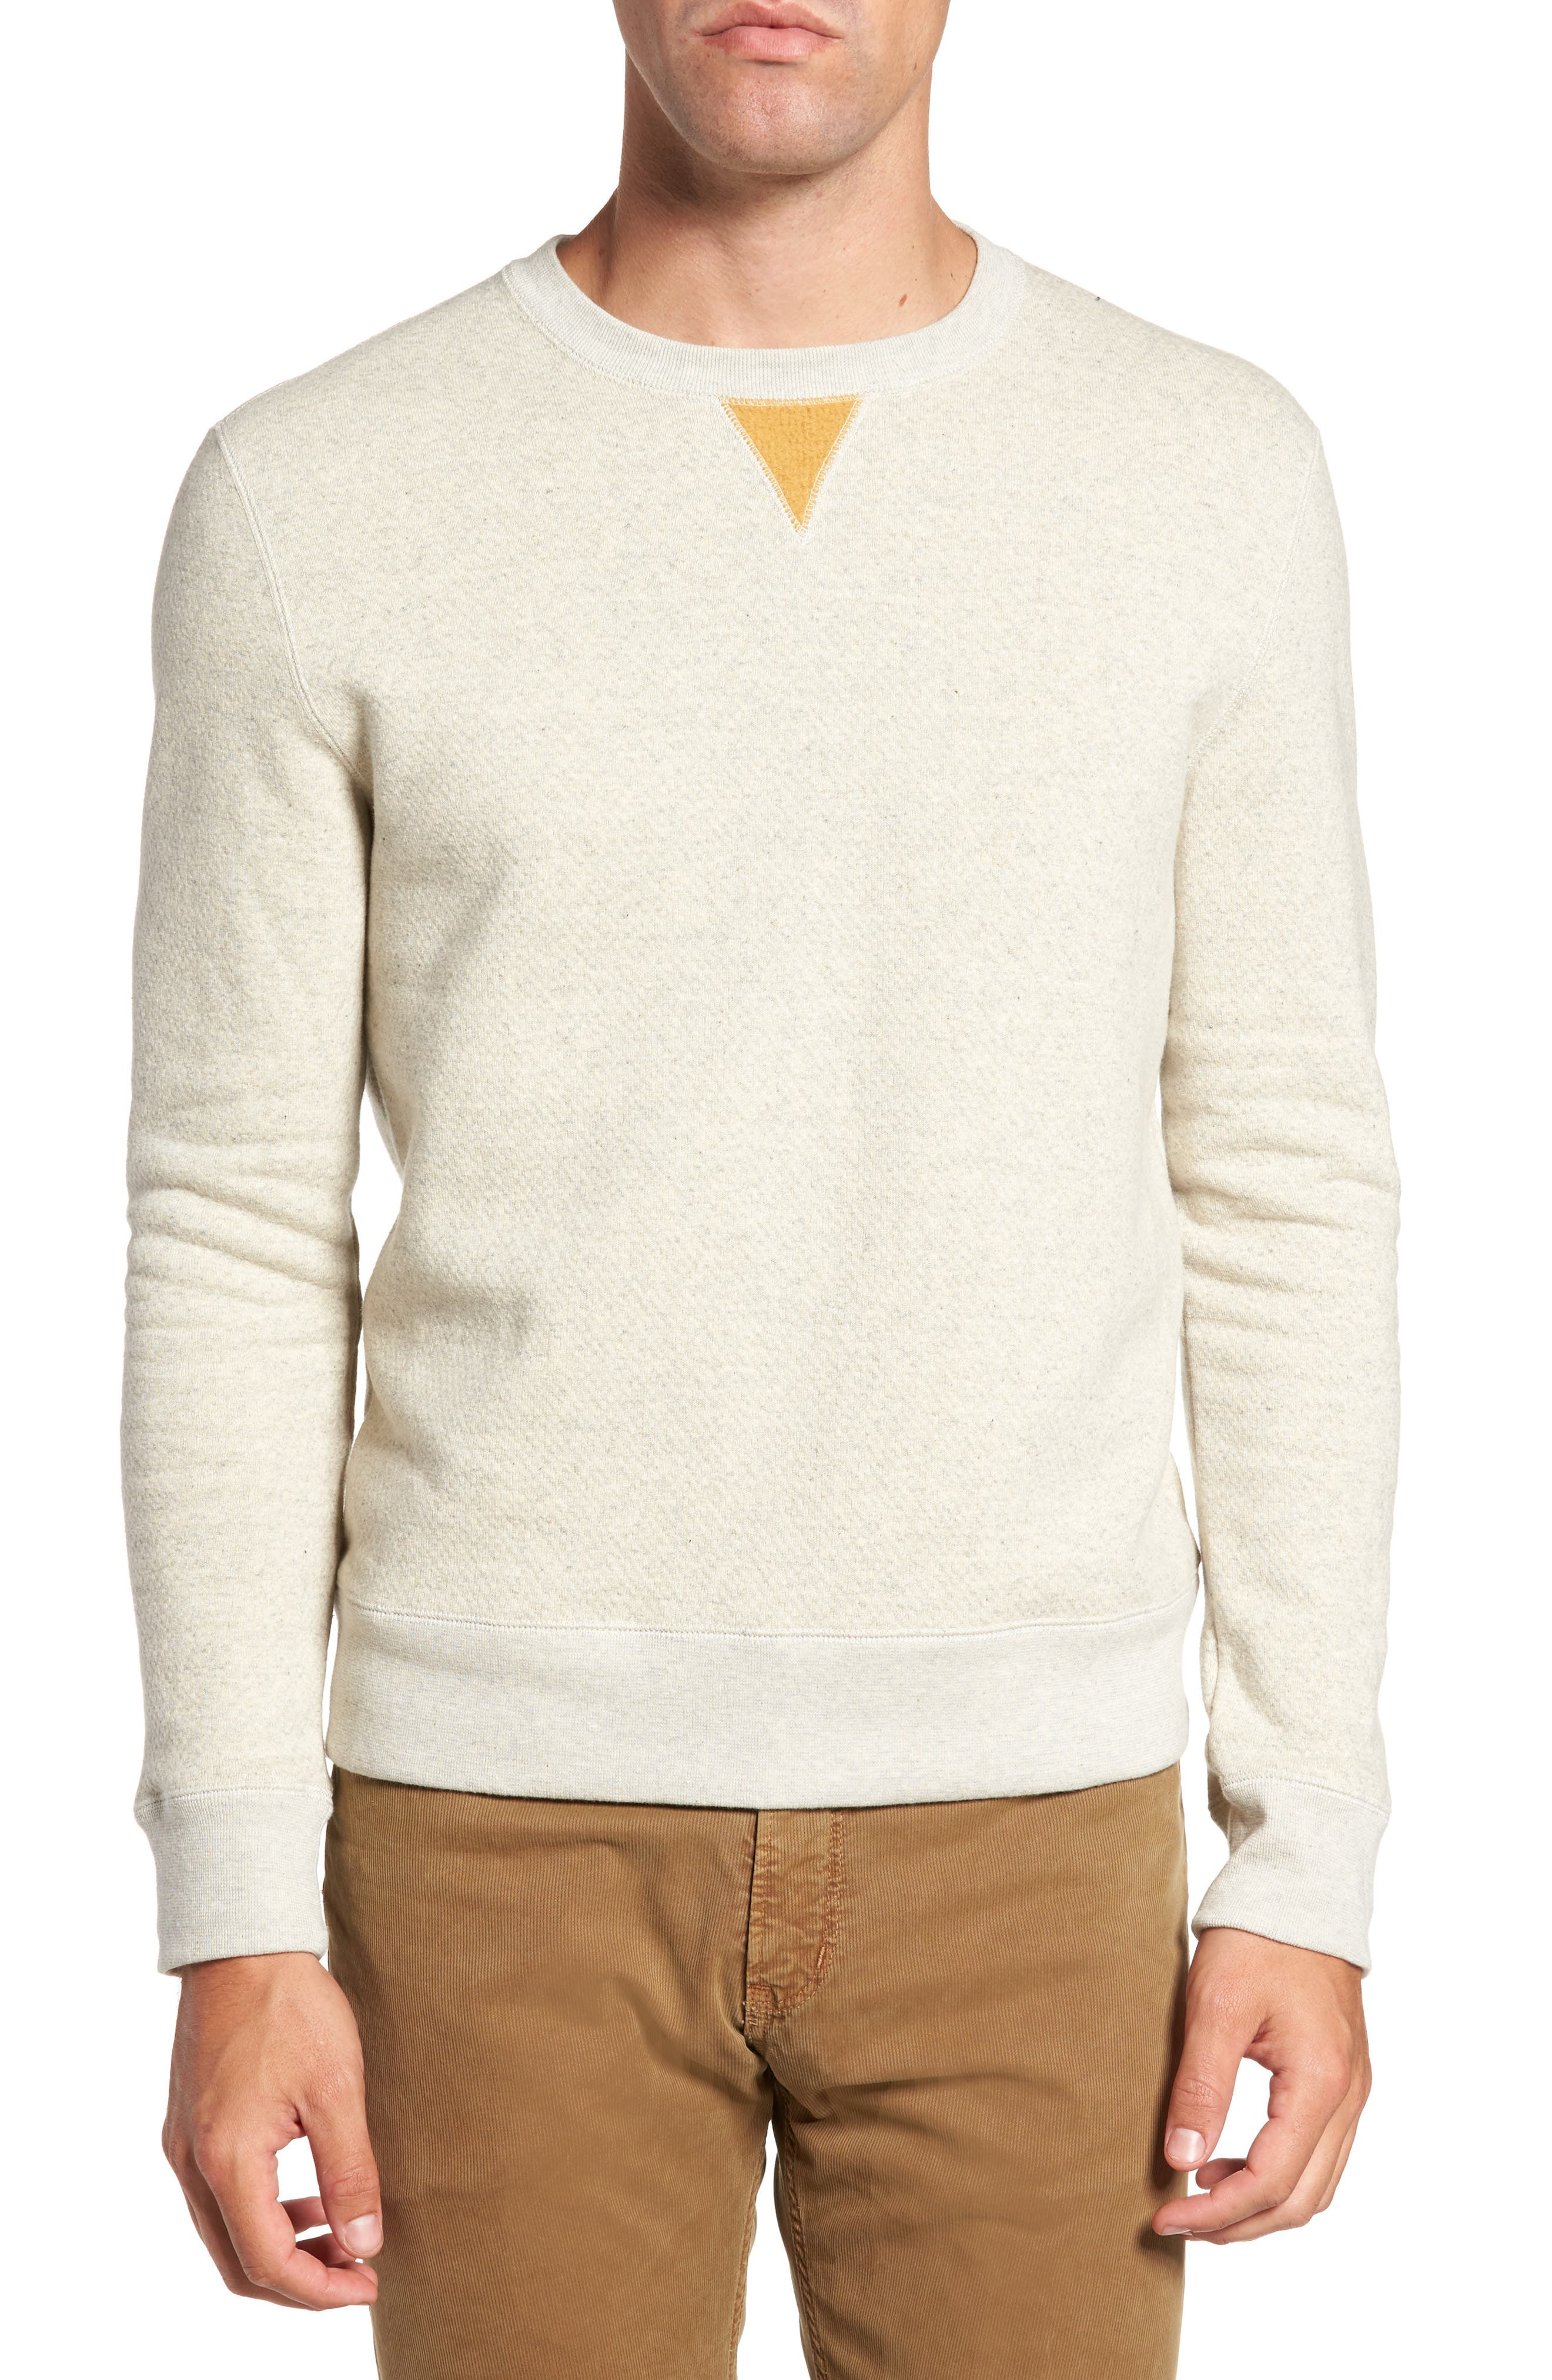 Billy Reid Cotton Fleece Sweatshirt